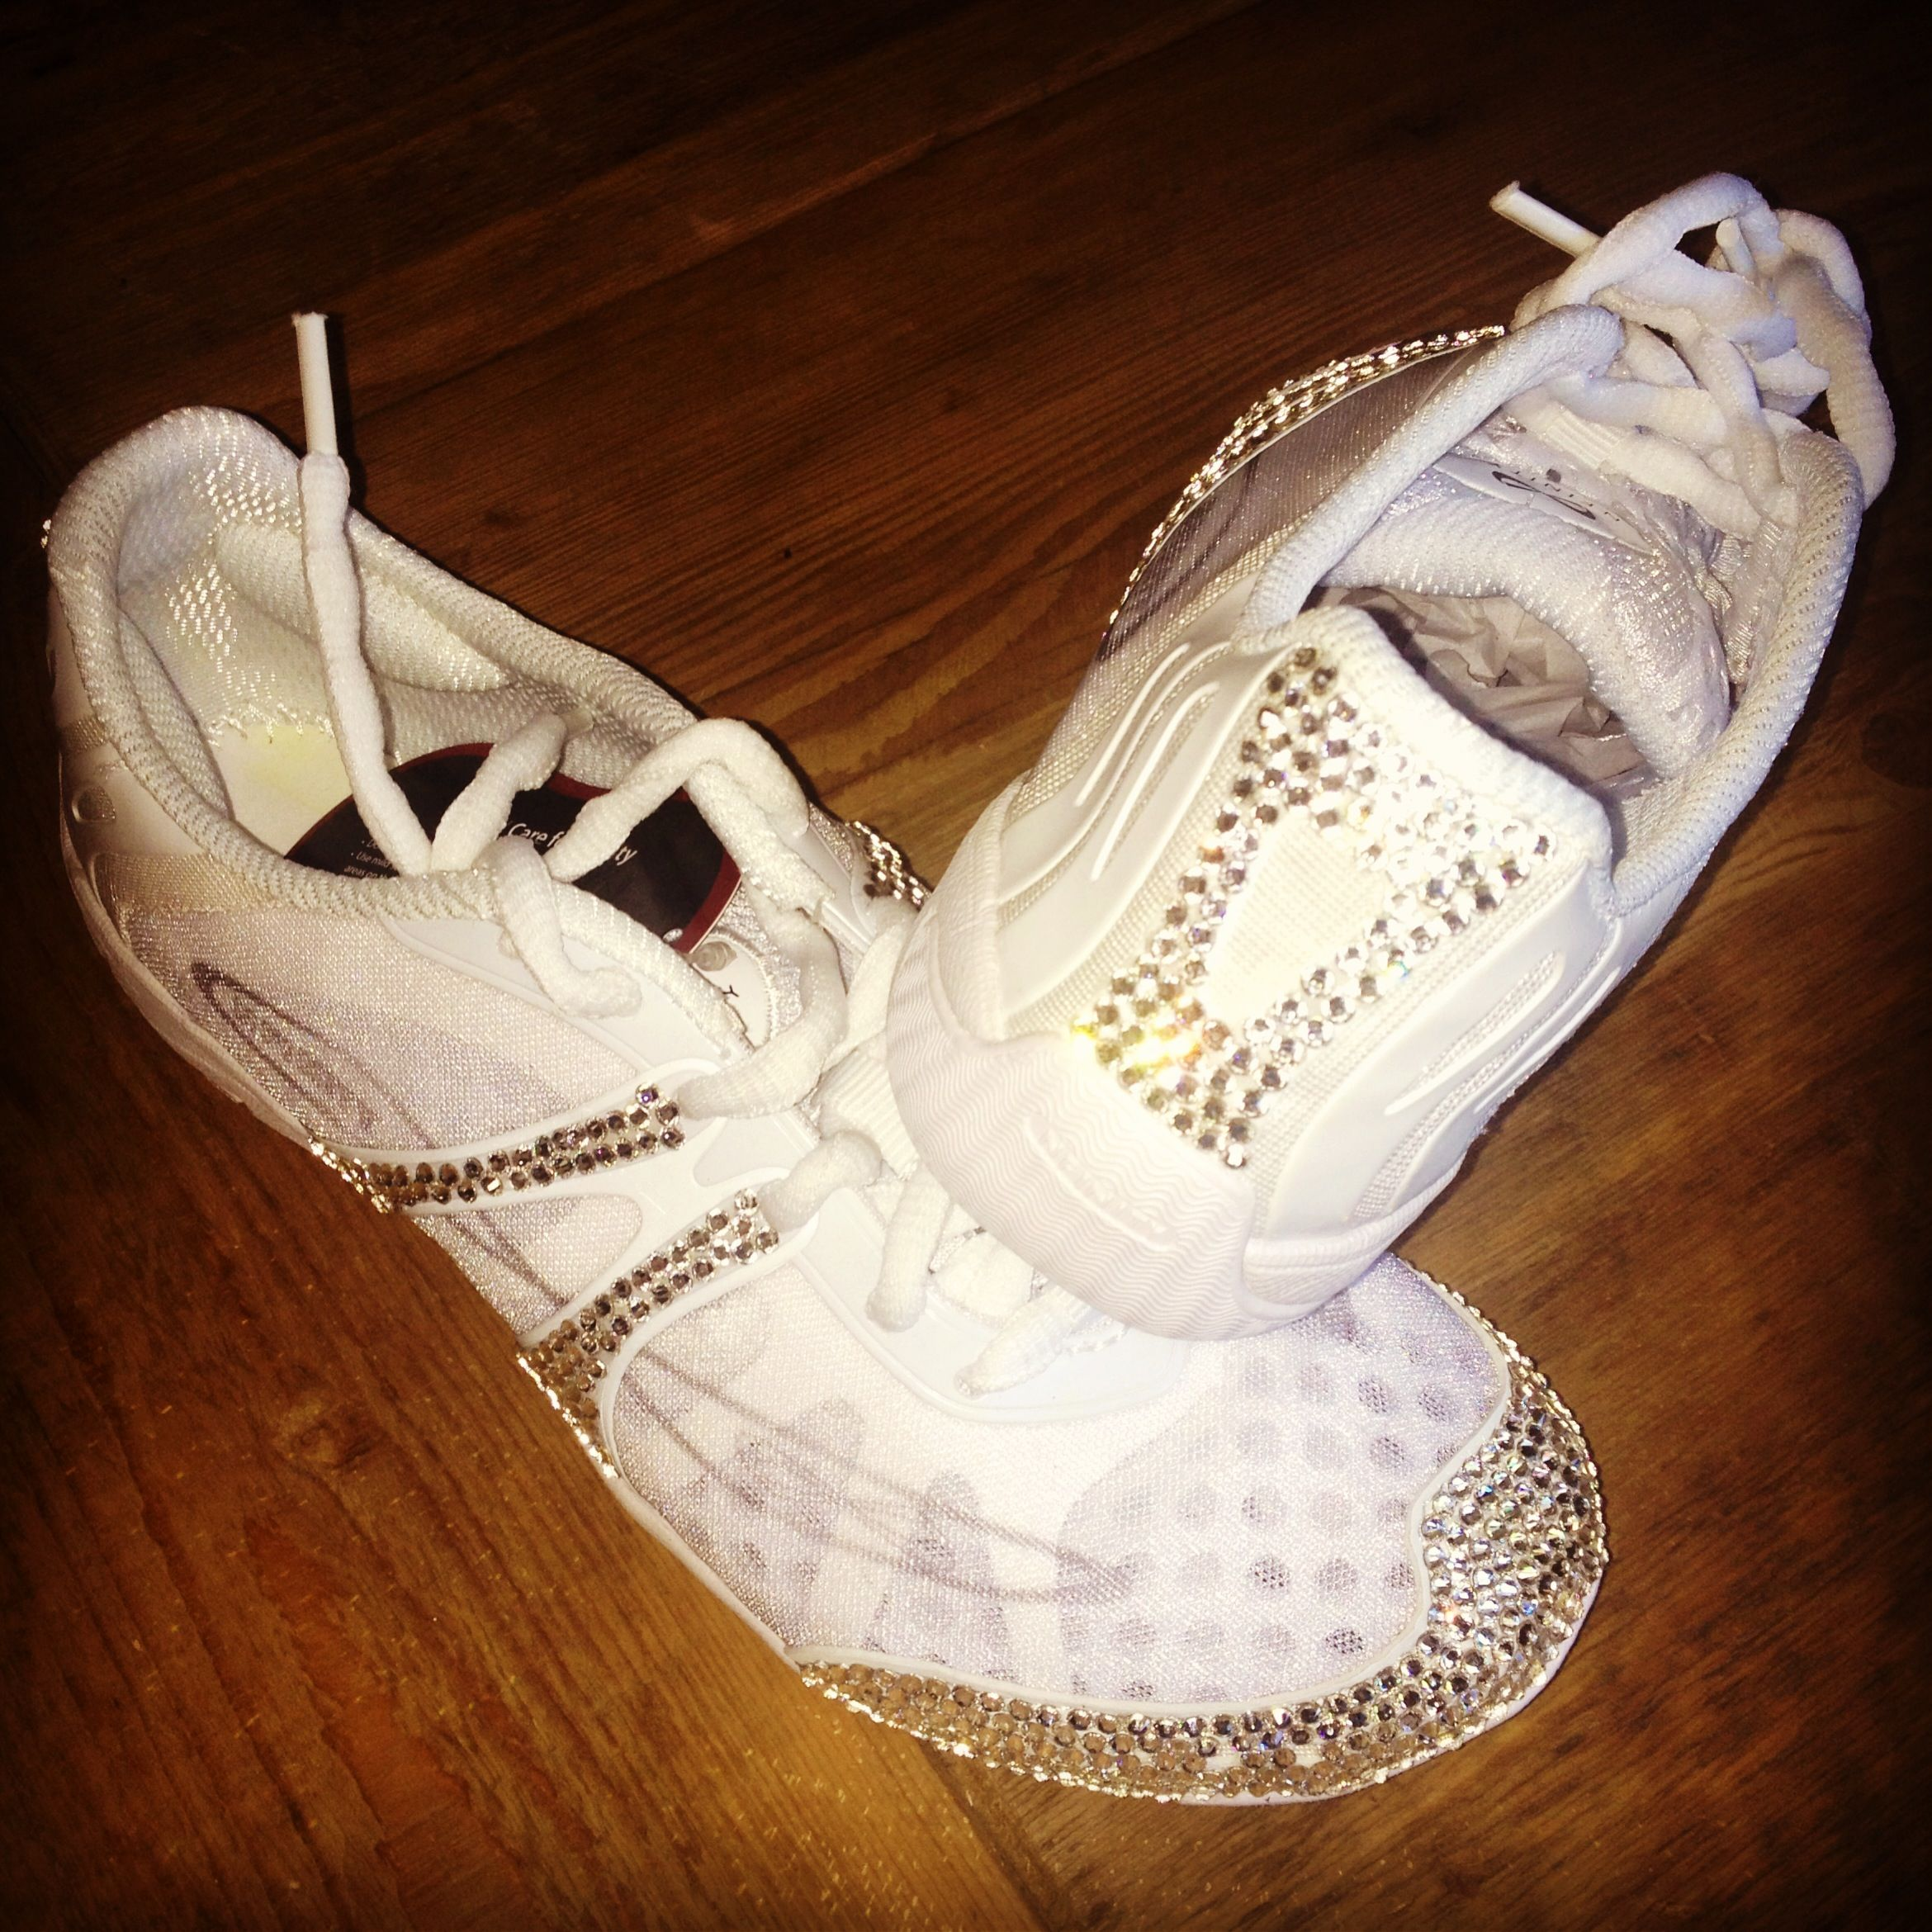 Guaranteed Shred Bases' Hands- Nfinity Vengeance Bling Cheerleading Shoes